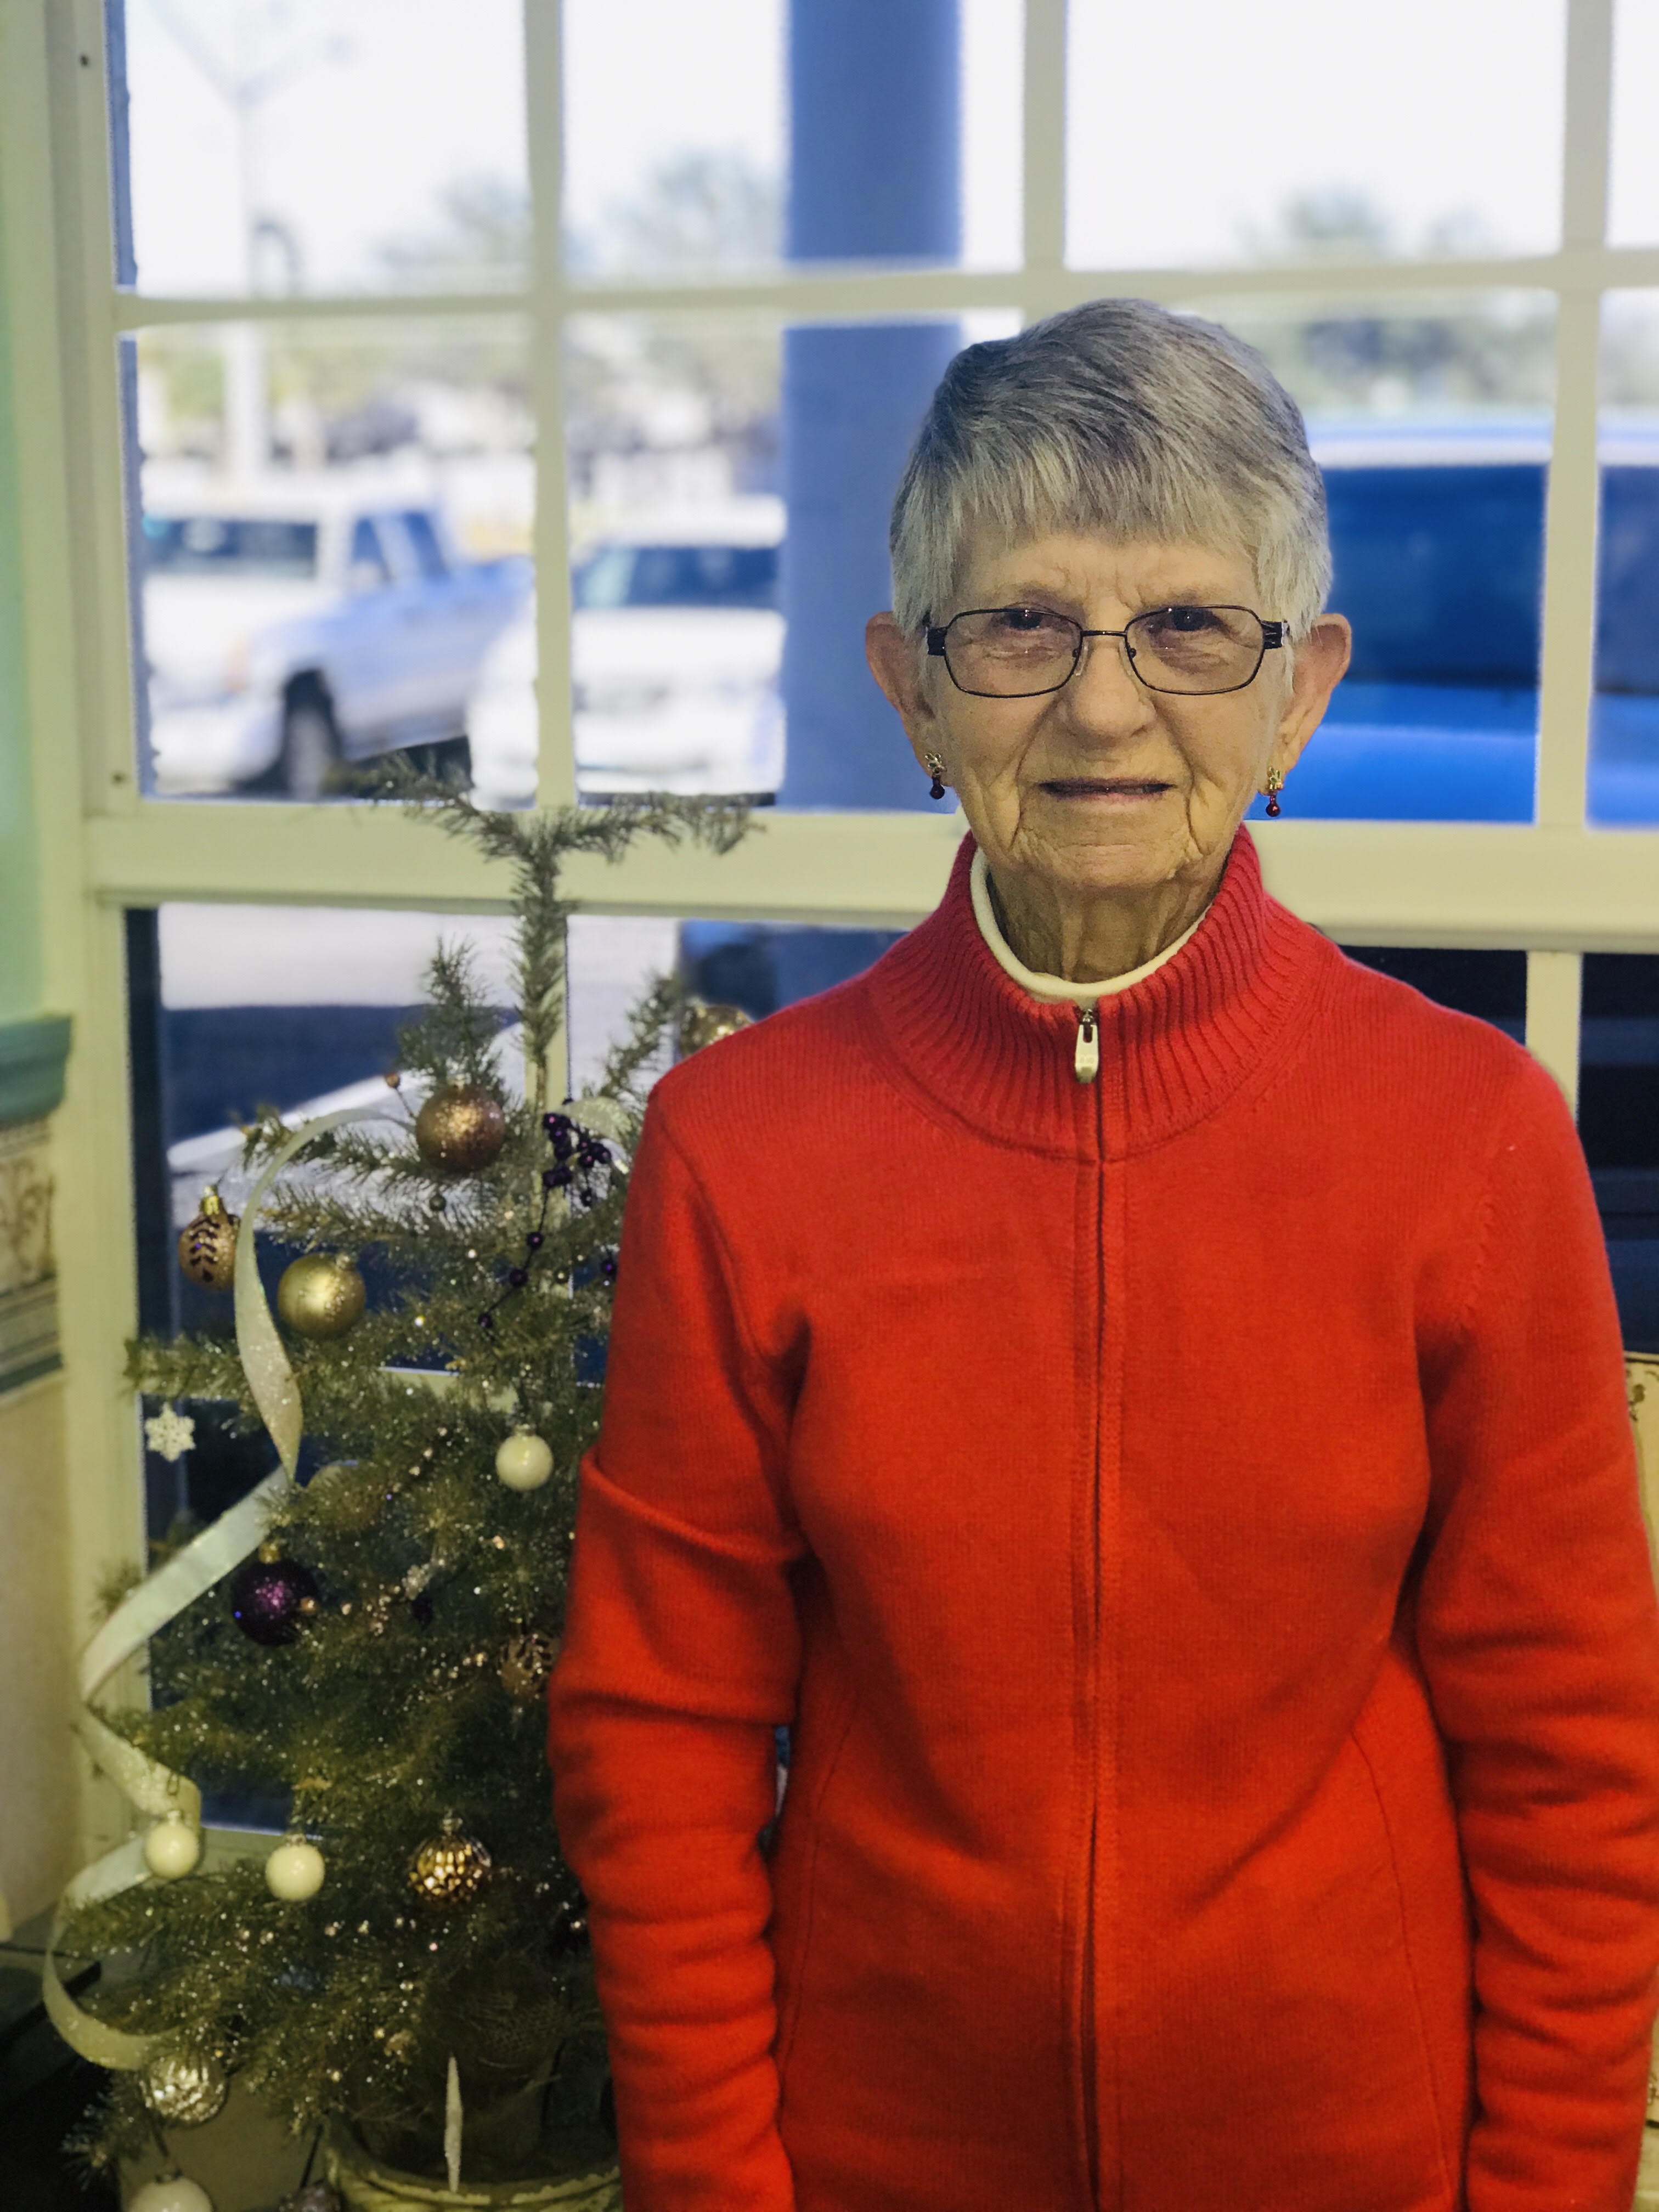 Mrs. D won $100 off her new glasses during the 2018 Bucci Eye Care Christmas Promotion